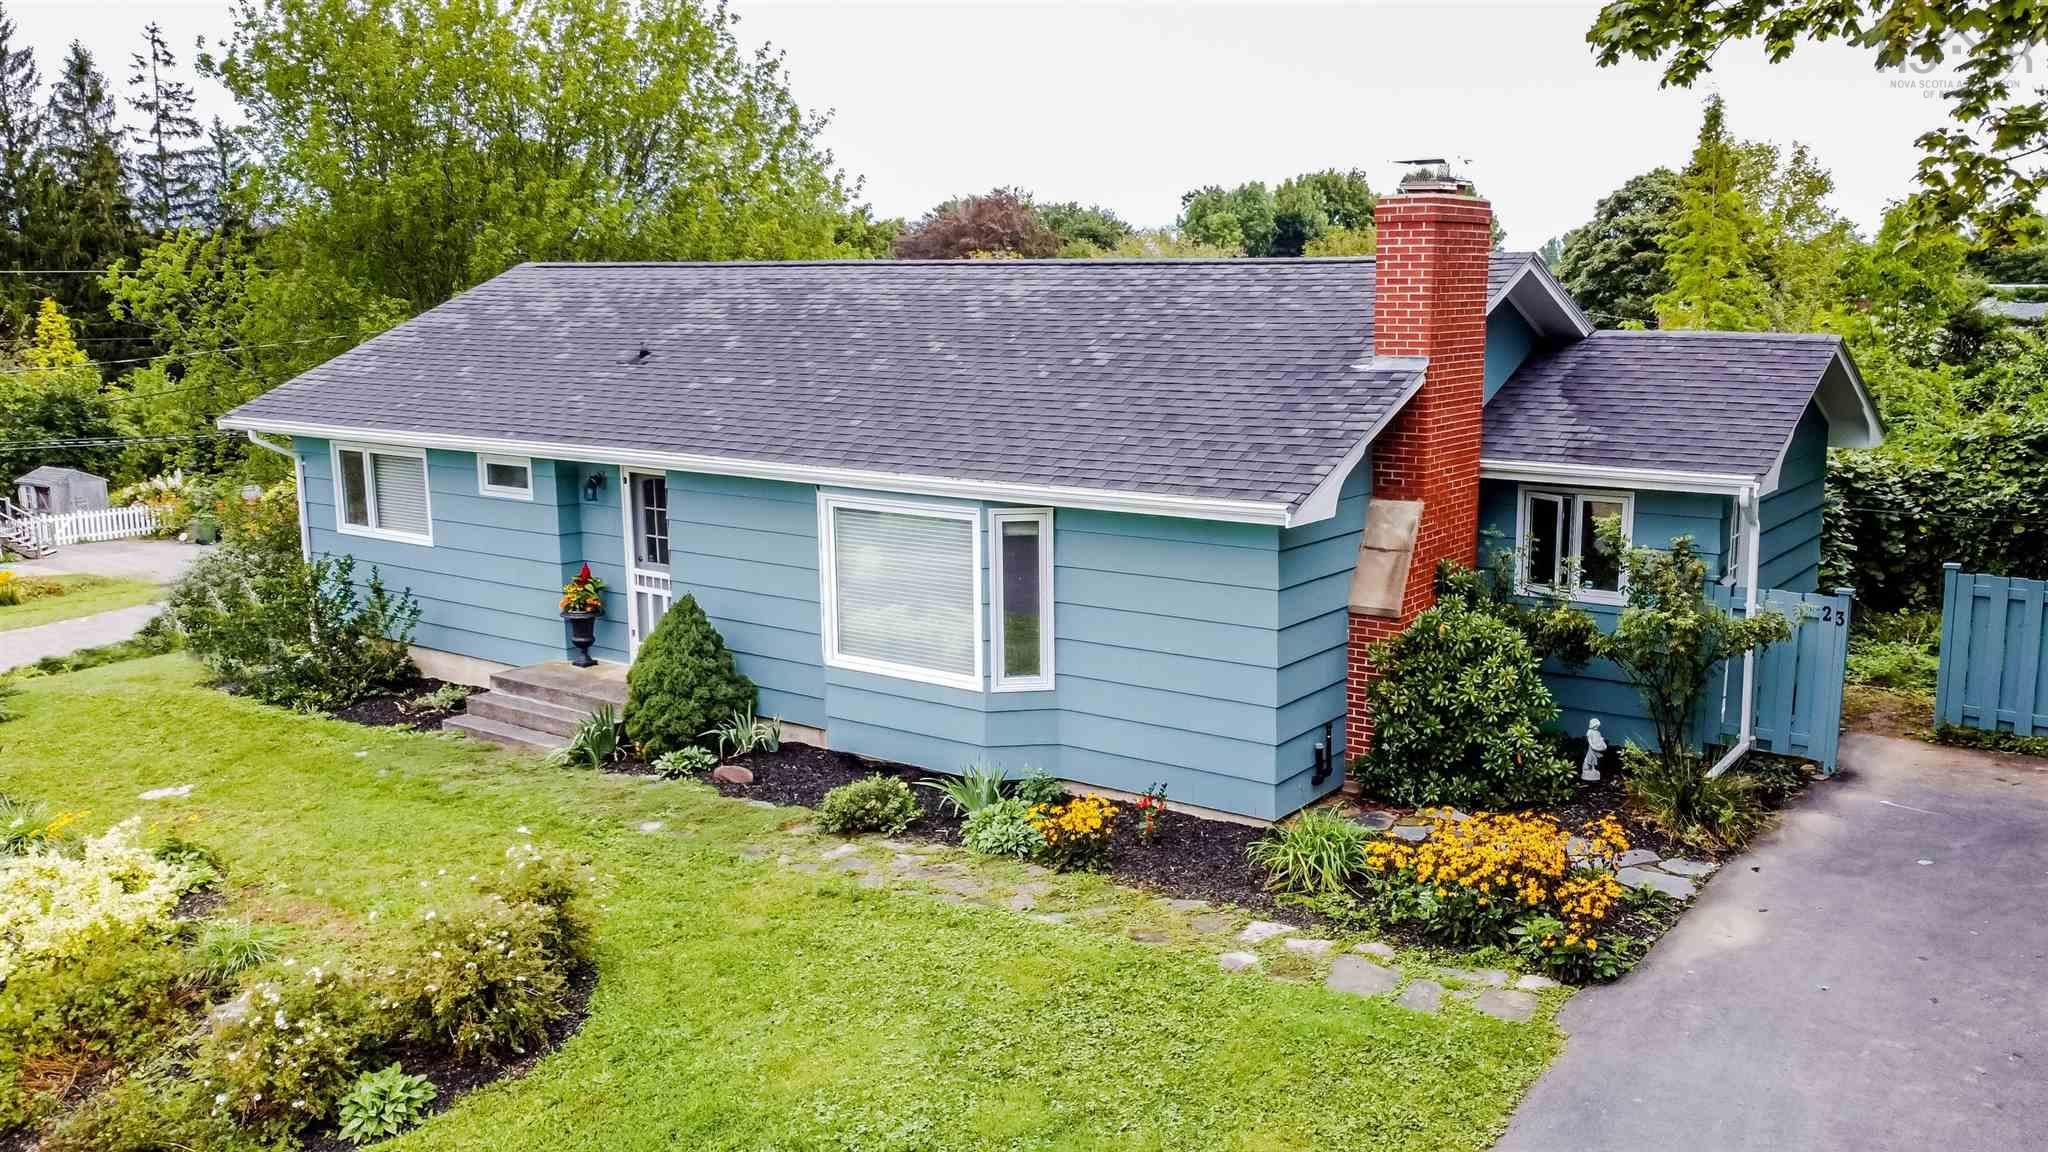 Main Photo: 23 Sherwood Drive in Wolfville: 404-Kings County Residential for sale (Annapolis Valley)  : MLS®# 202123646